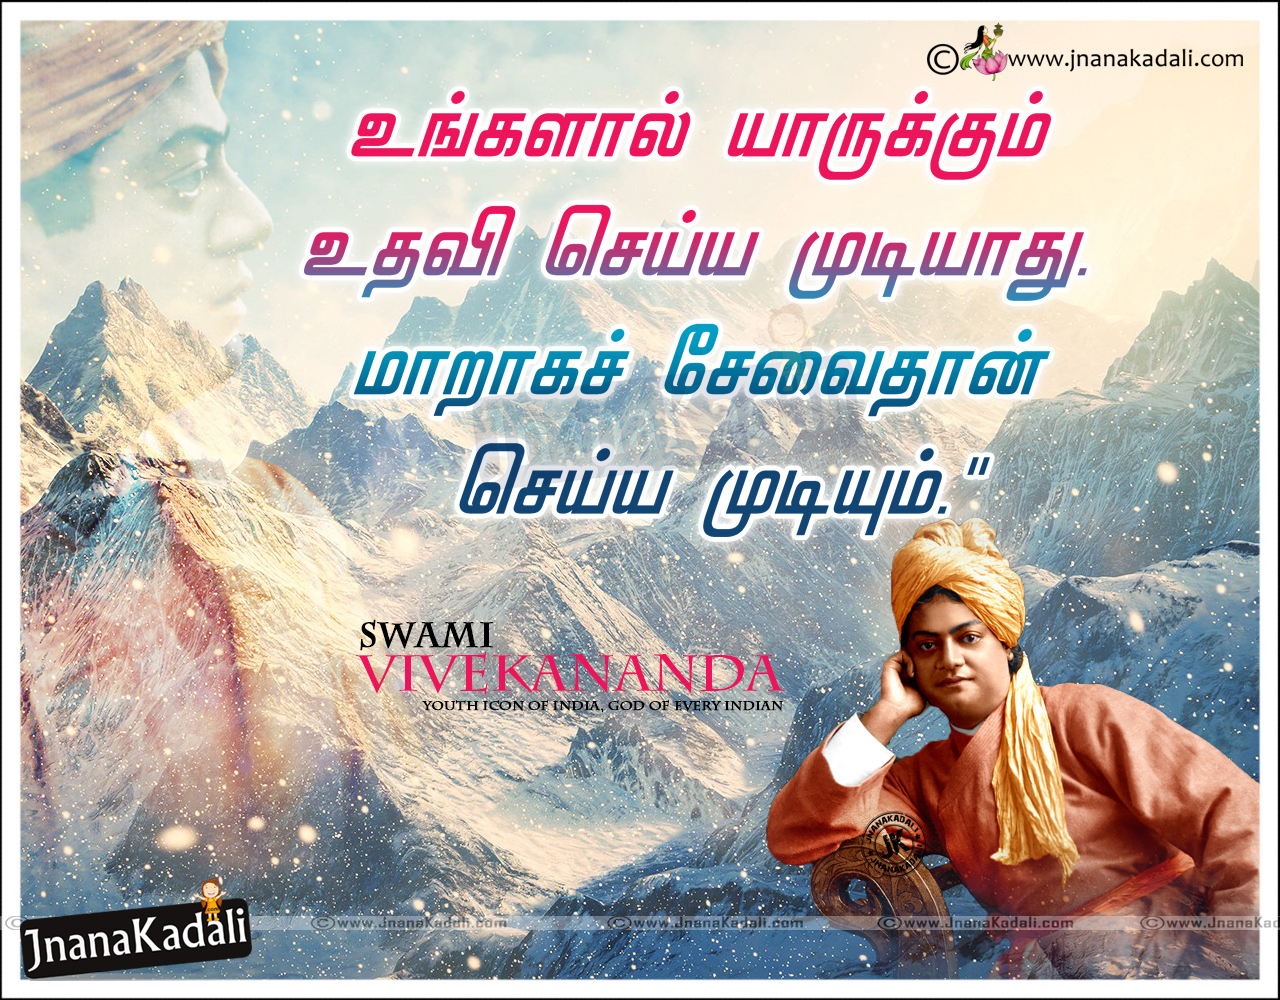 life history of swami vivekananda in tamil The biography of one of the greatest saints mother india has produced the disciple of sri ramakrishna.